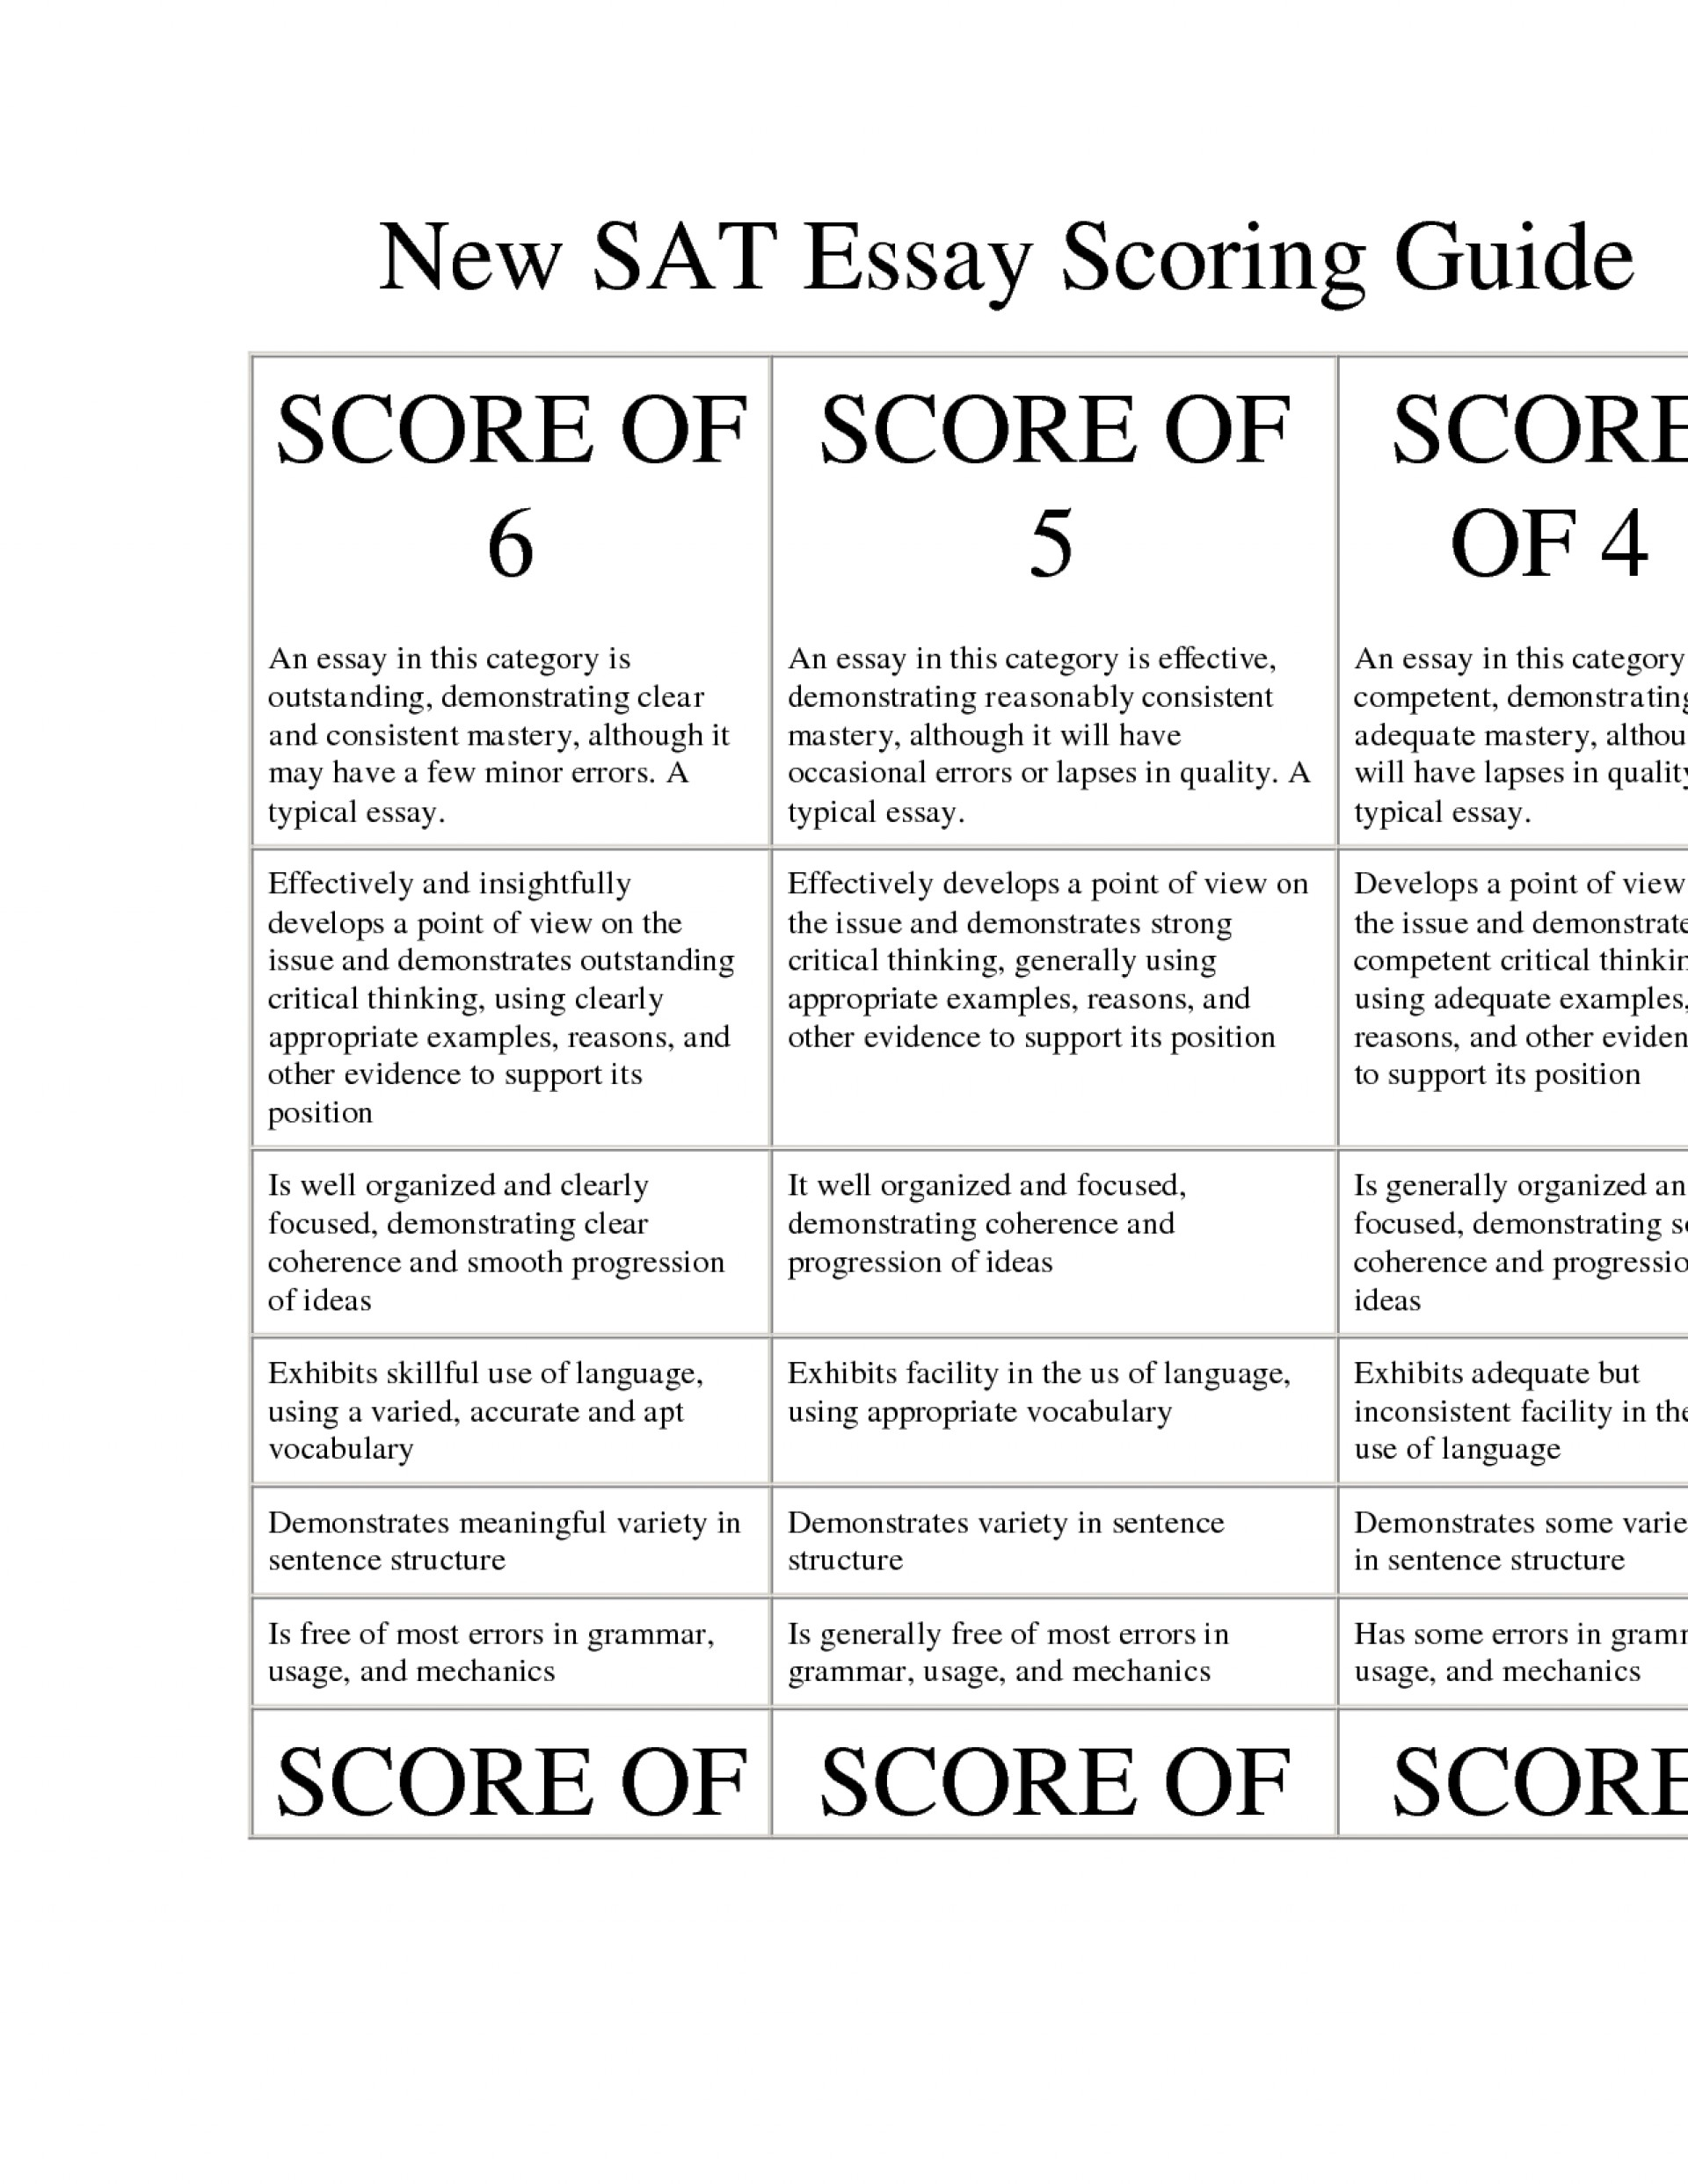 004 Sat Essay Rubric Quotes Quotesgram On L Unbelievable 2018 Pdf Scoring 1920